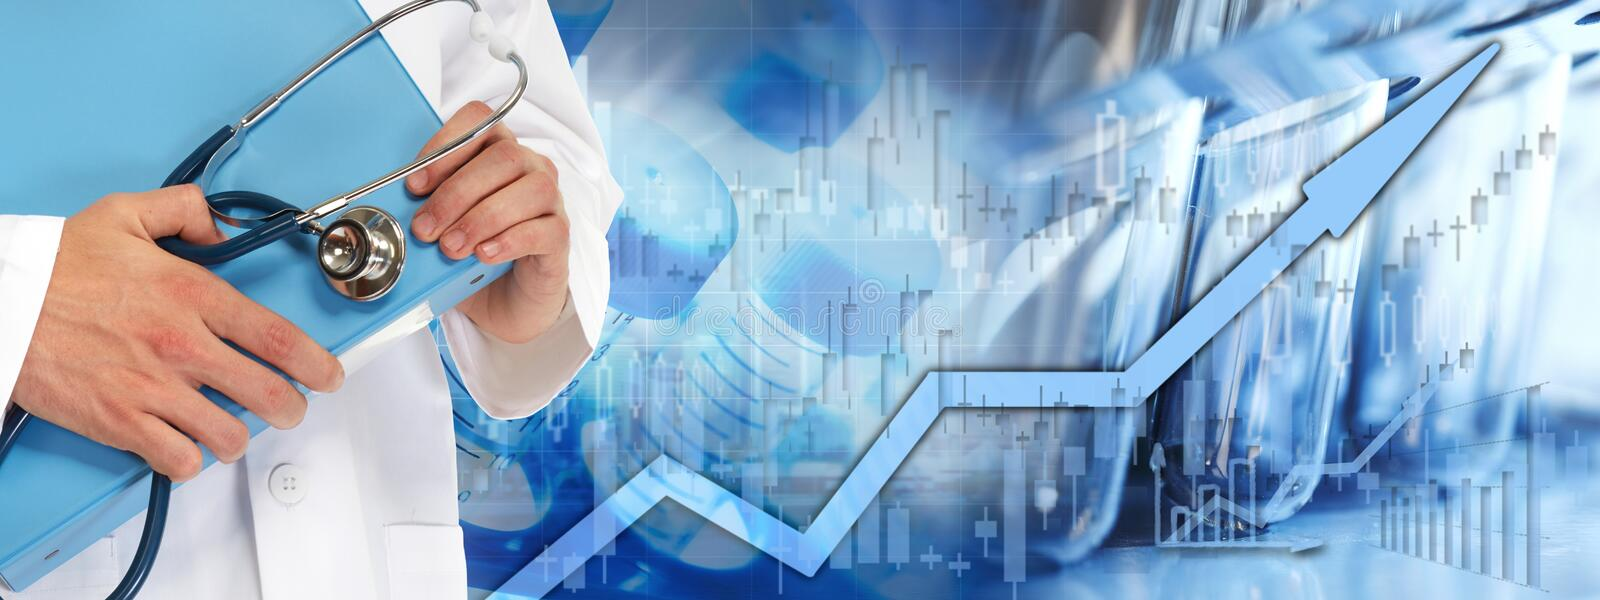 Health care stock market background. Healthcare medical biopharmaceutical investing stock chart background royalty free stock images